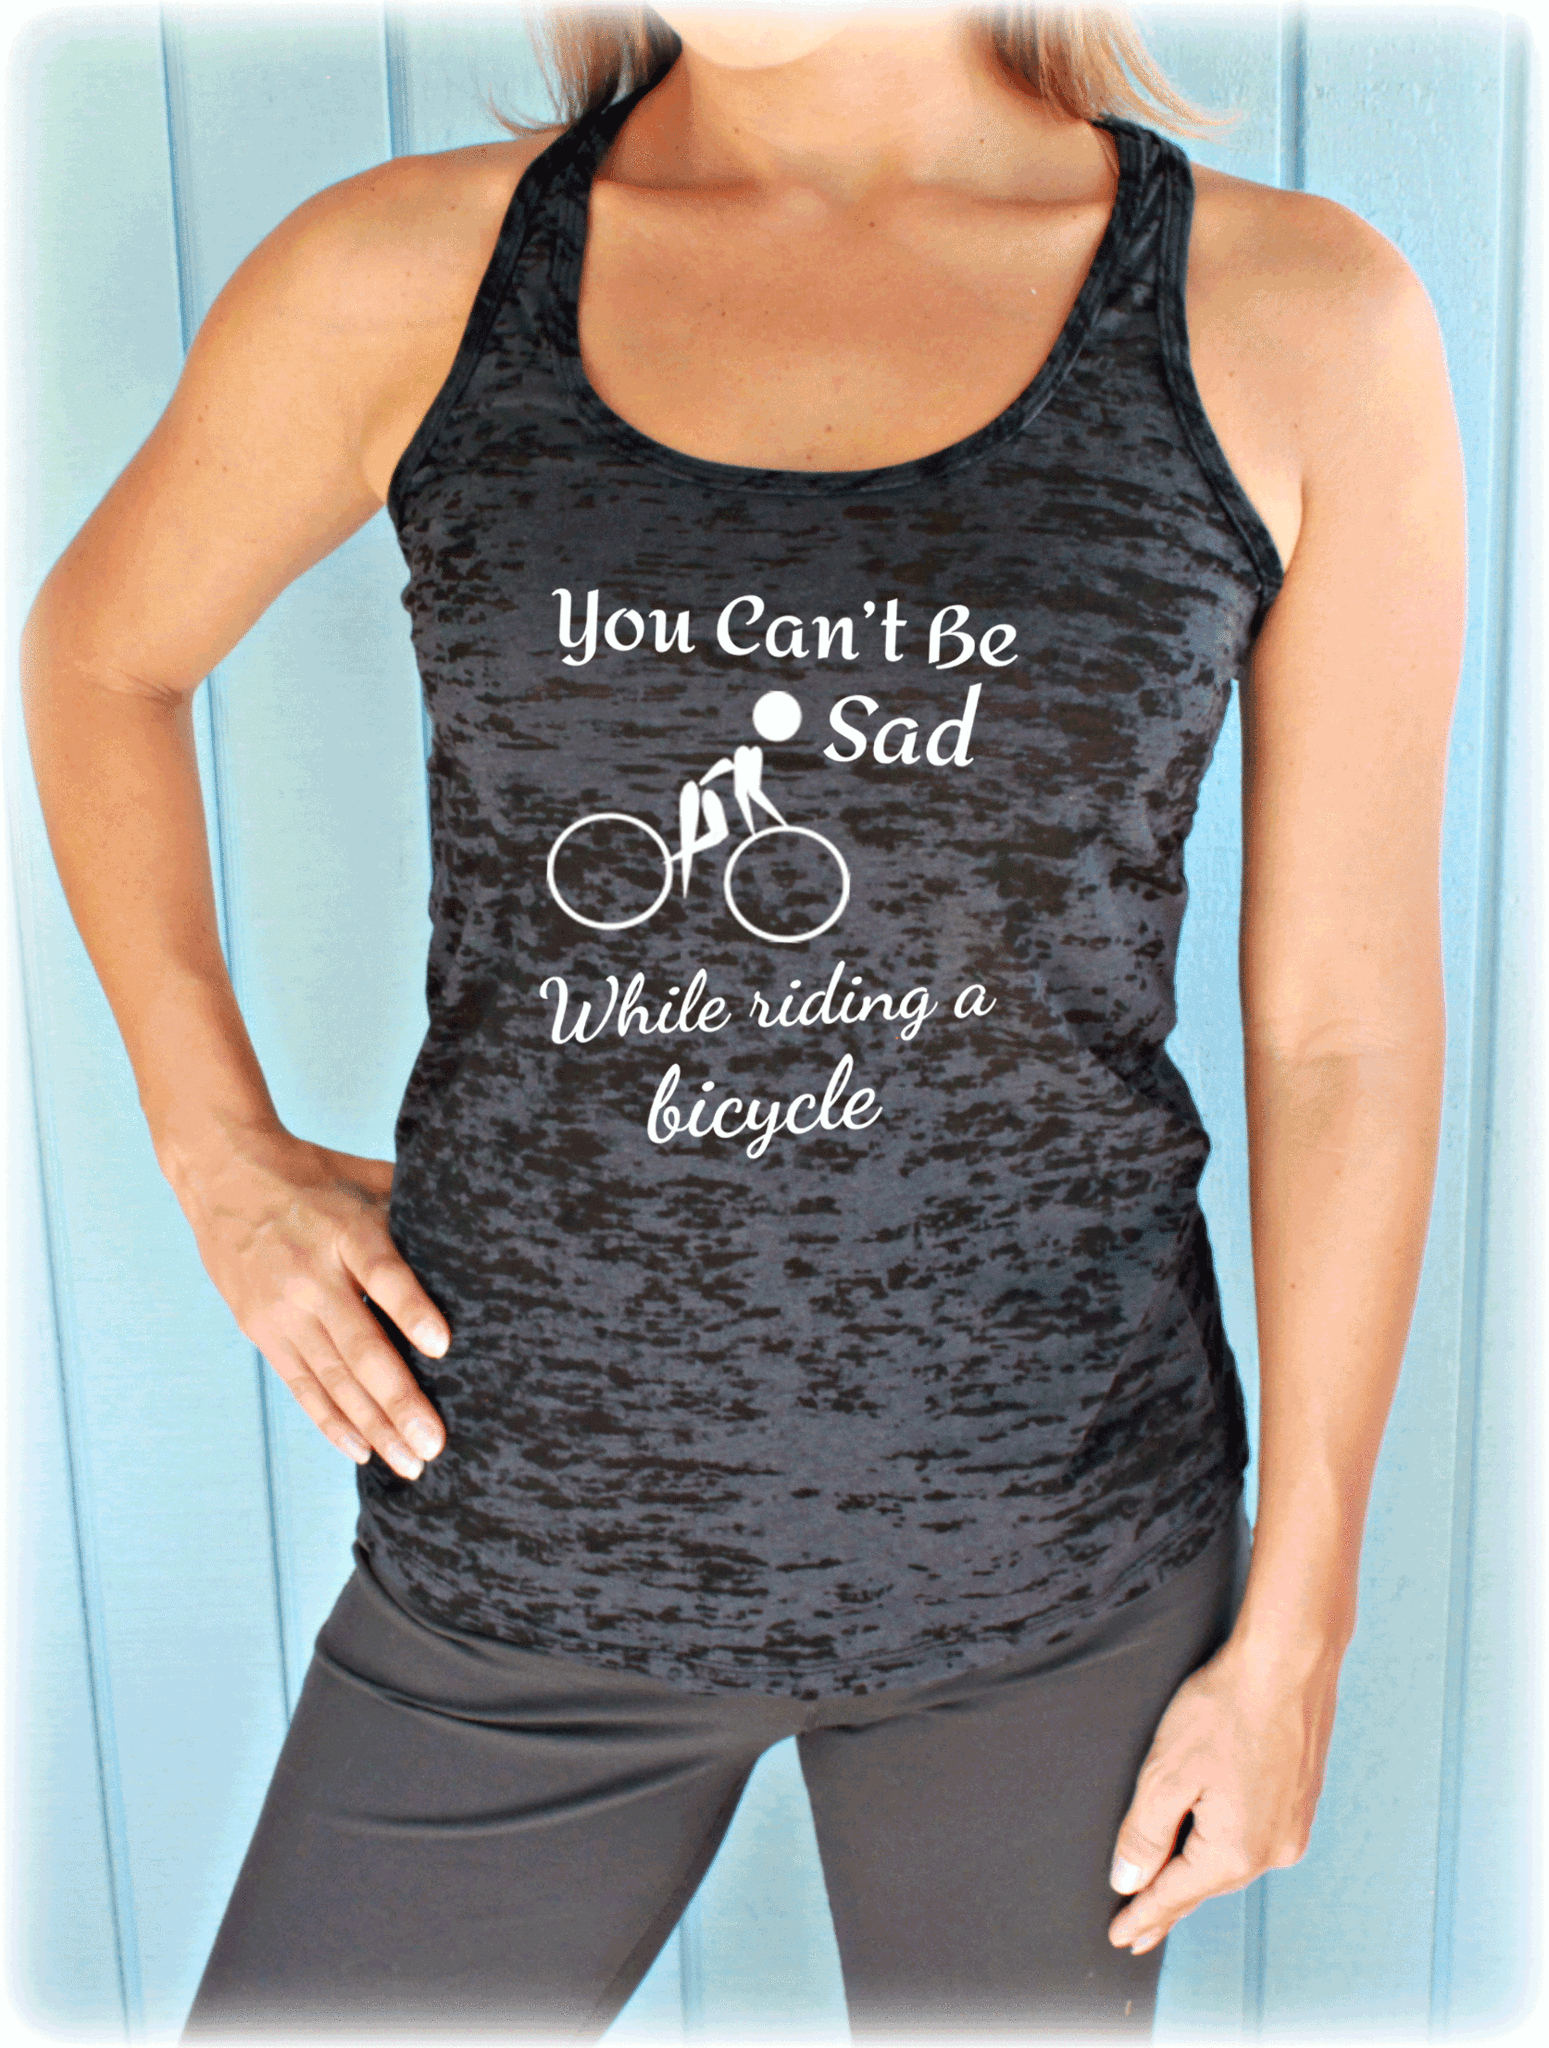 You Can't Be Sad While Riding a Bicycle Tank Top. Womens Cycling Clothes. Burnout Bike Tank.